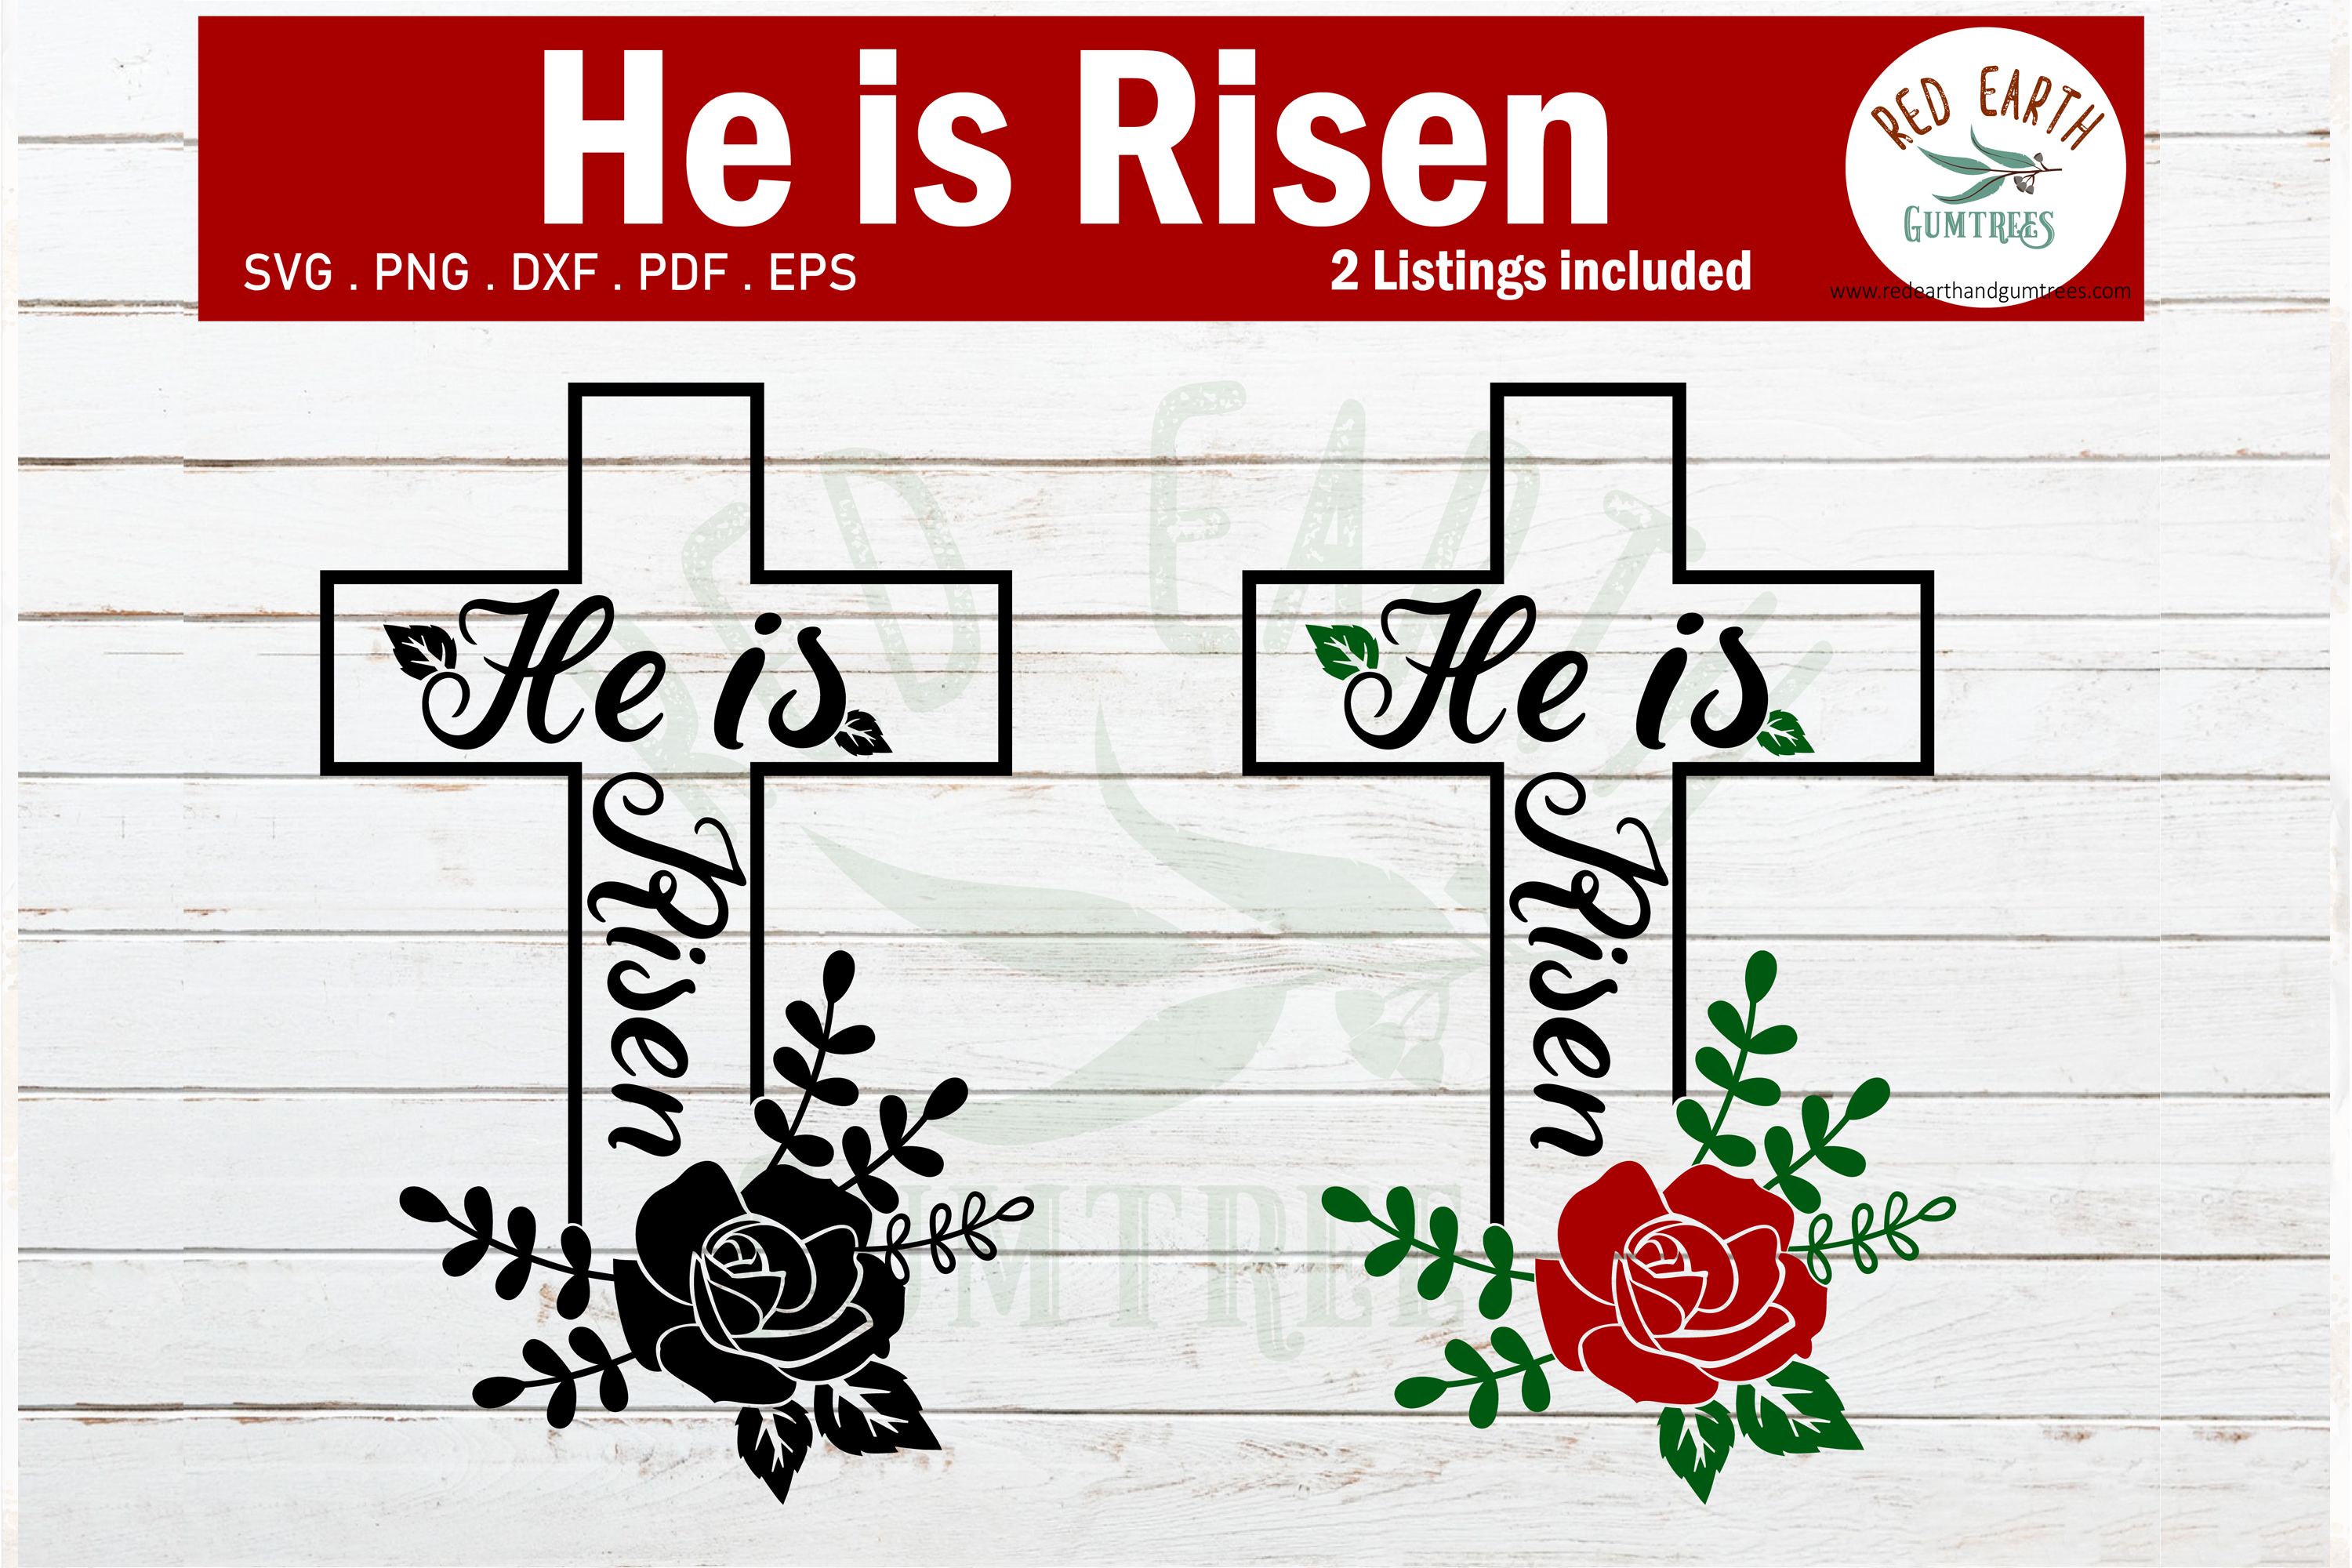 Easter He is risen bible verse,He has risen SVG,PNG,DXF,PDF example image 1